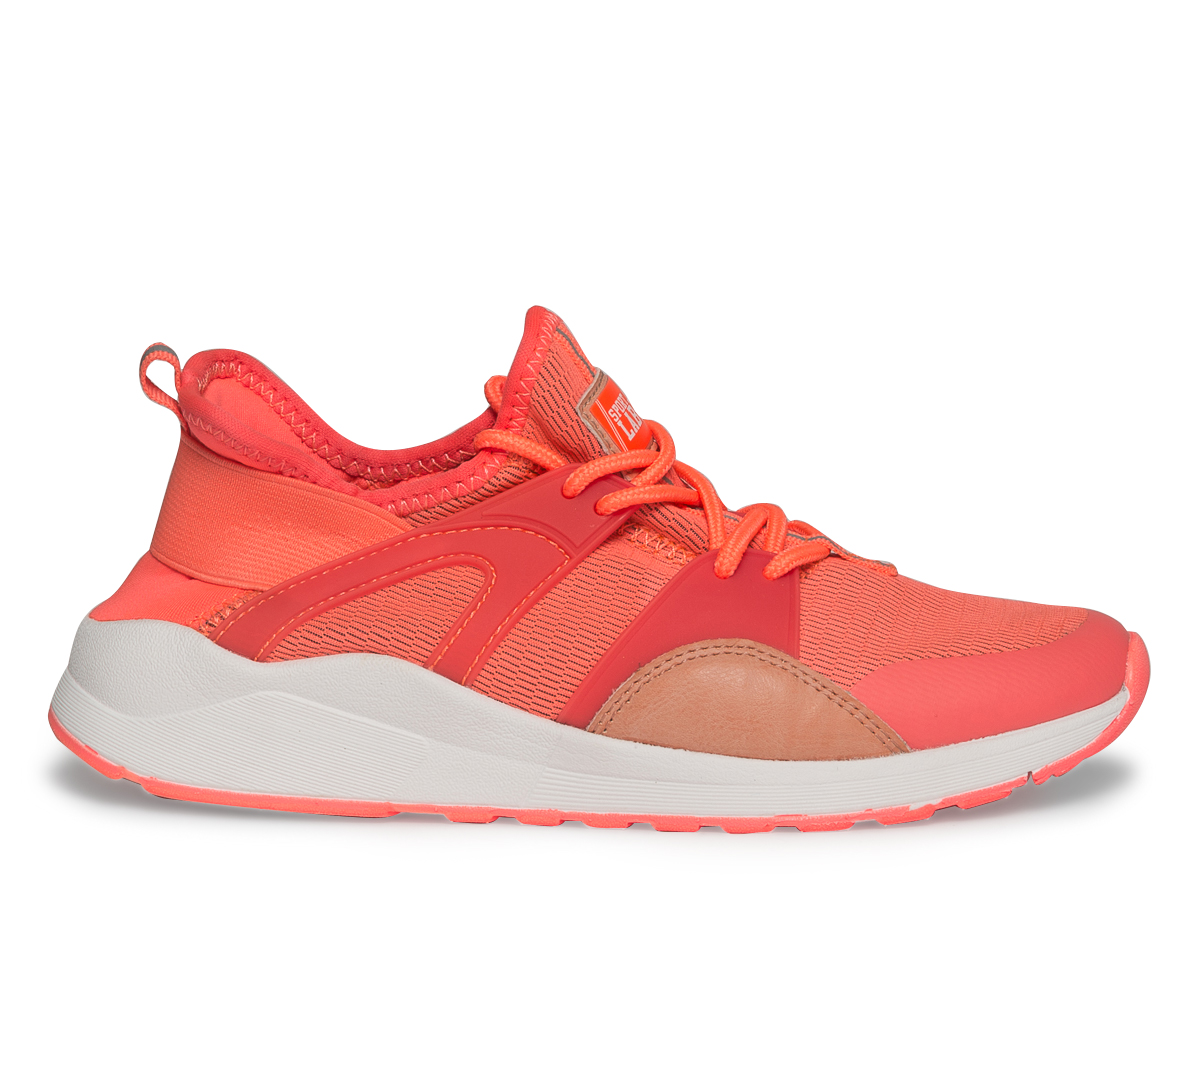 Eram Basket Fluo Basket Rose Eram EYe29IWDH